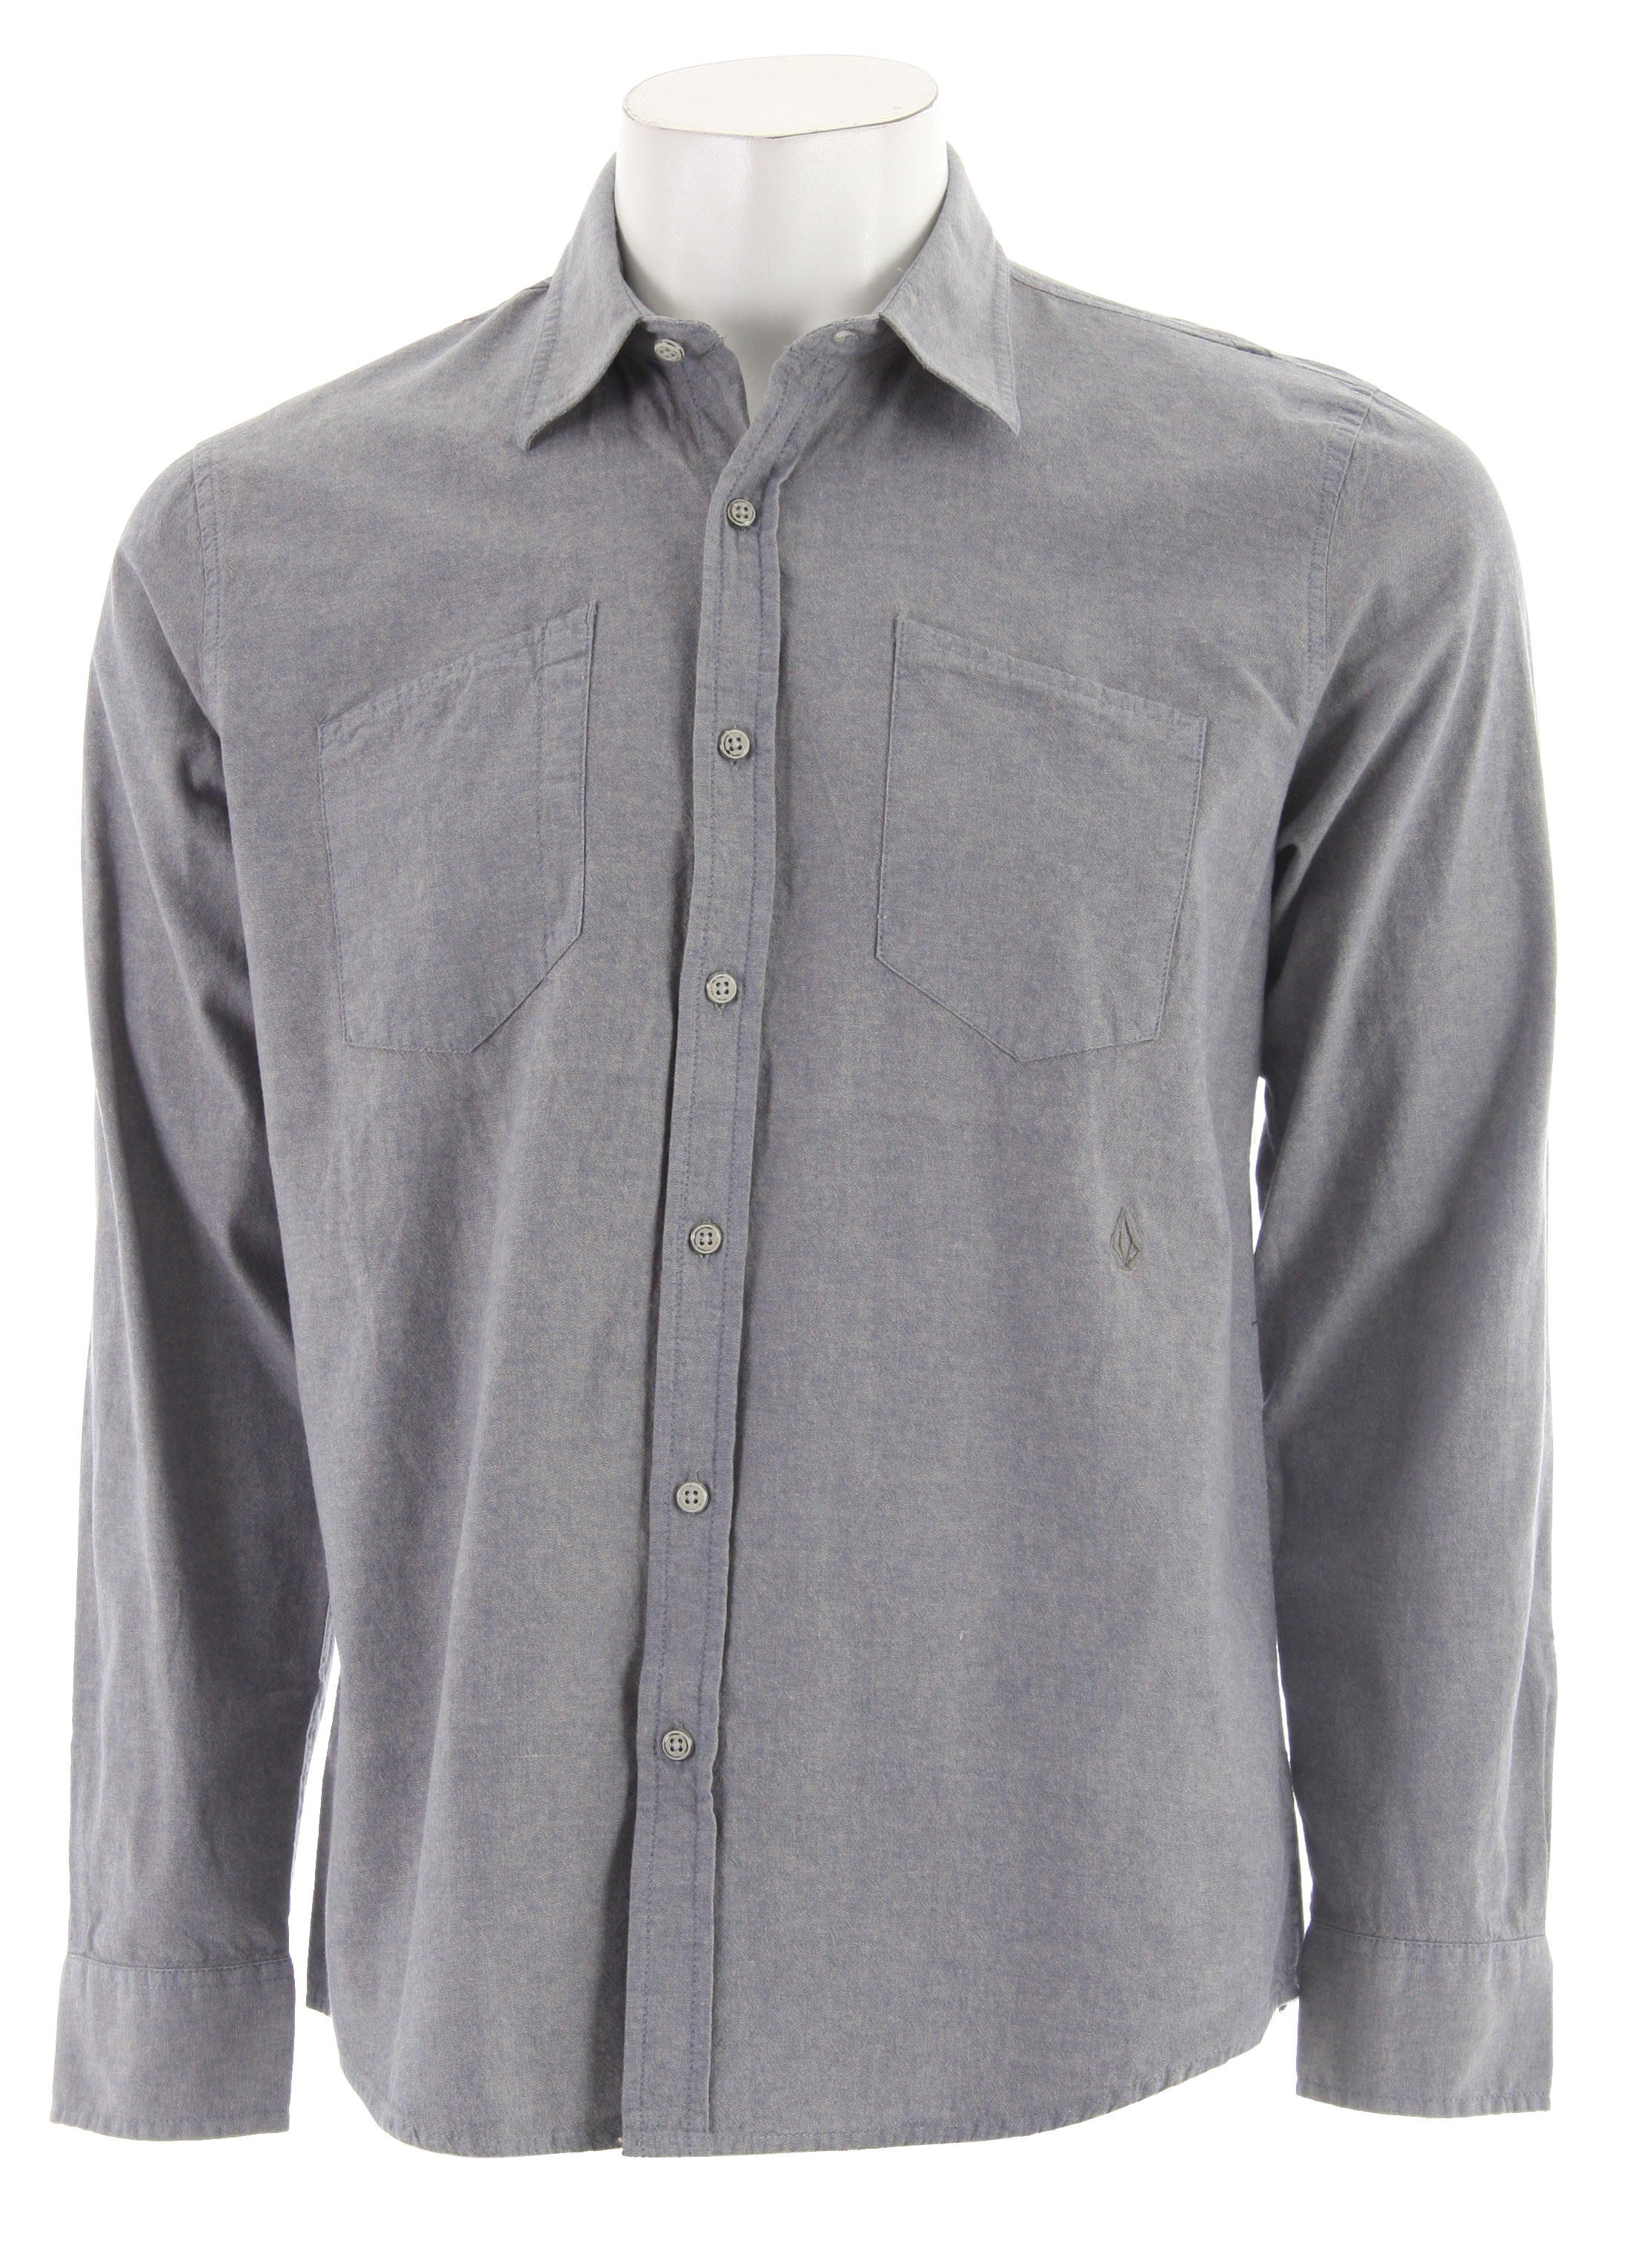 Surf Key Features of the Volcom Lodger Chambray Shirt: Workwear Style Long Sleeve Chambray. Double Chest Patch Pockets Hidden Button Down Collar Metal Buttons 100% Cotton - $28.76